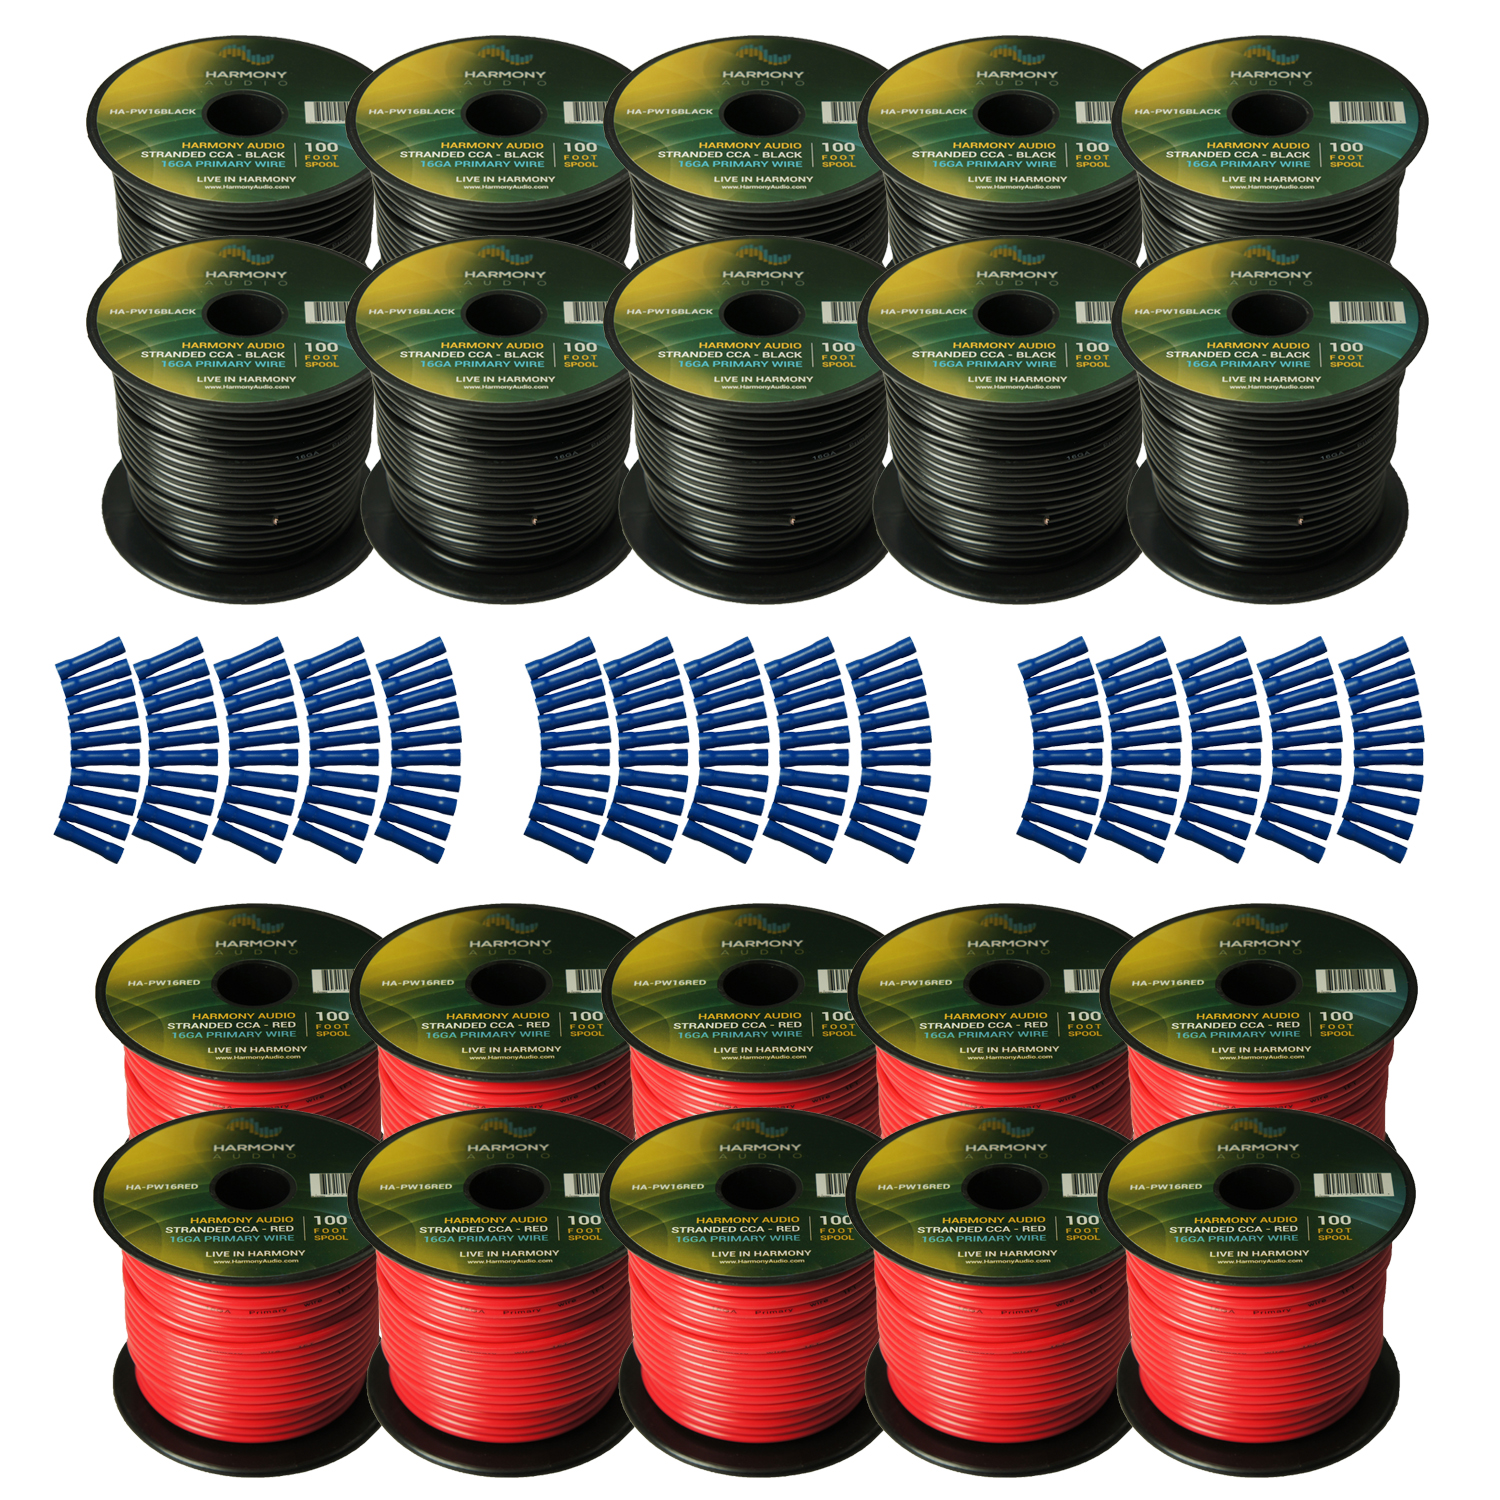 Harmony Audio Primary Single Conductor 16 Gauge Power or Ground Wire - 20 Rolls - 2000 Feet - Red & Black for Car Audio / Trailer / Model Train / Remote